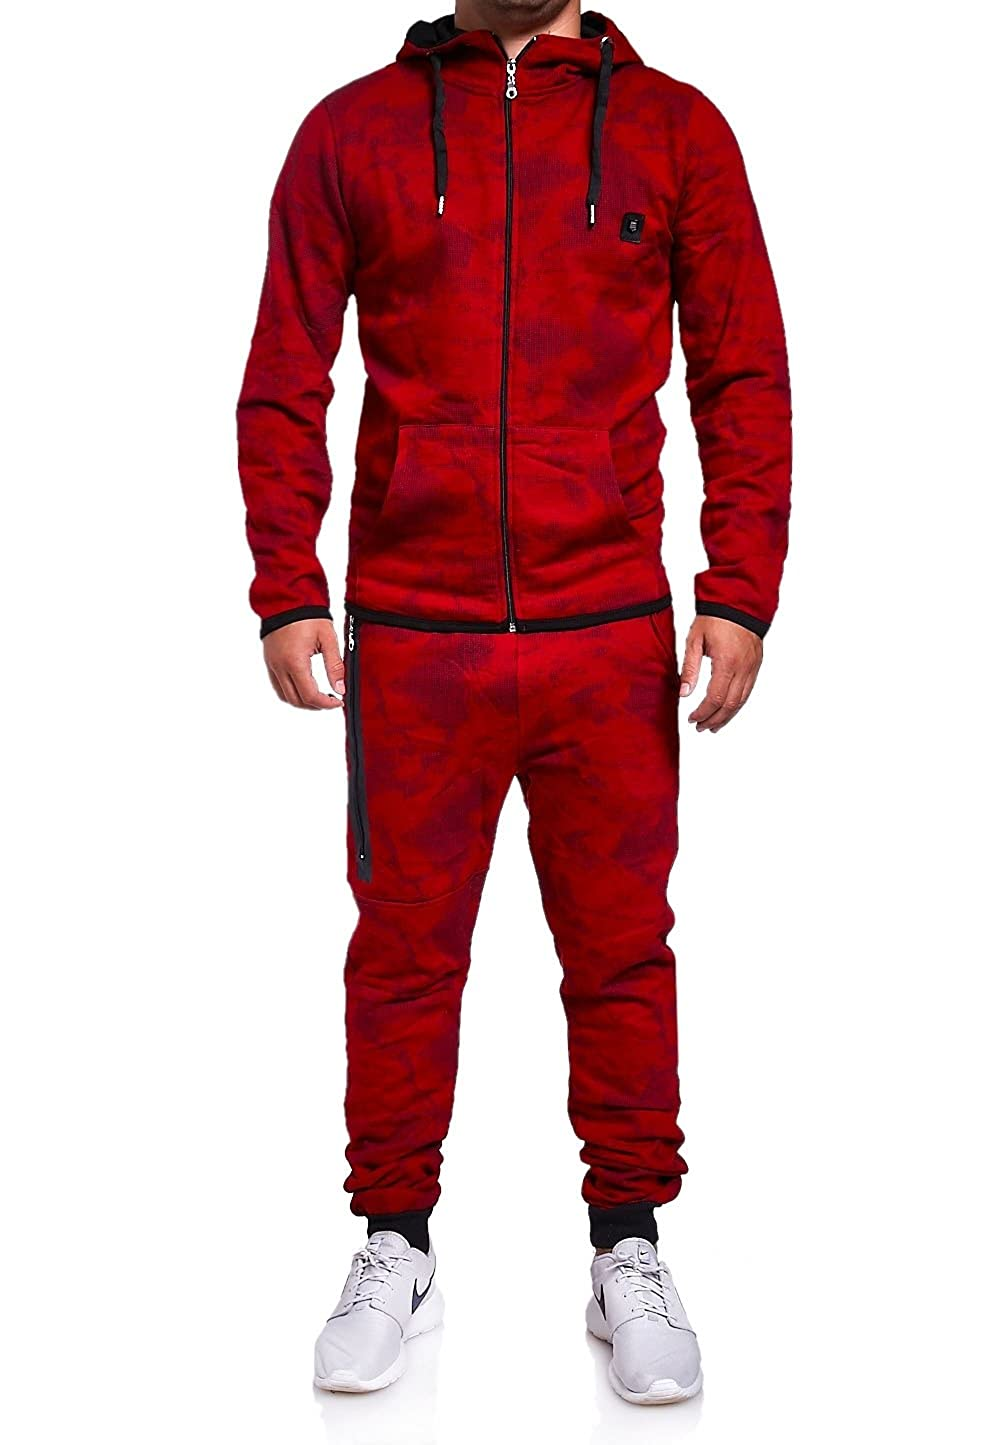 Sweatshirt R-739 MYTRENDS Styles MT Styles Track Suit Bottoms Jogging Pants